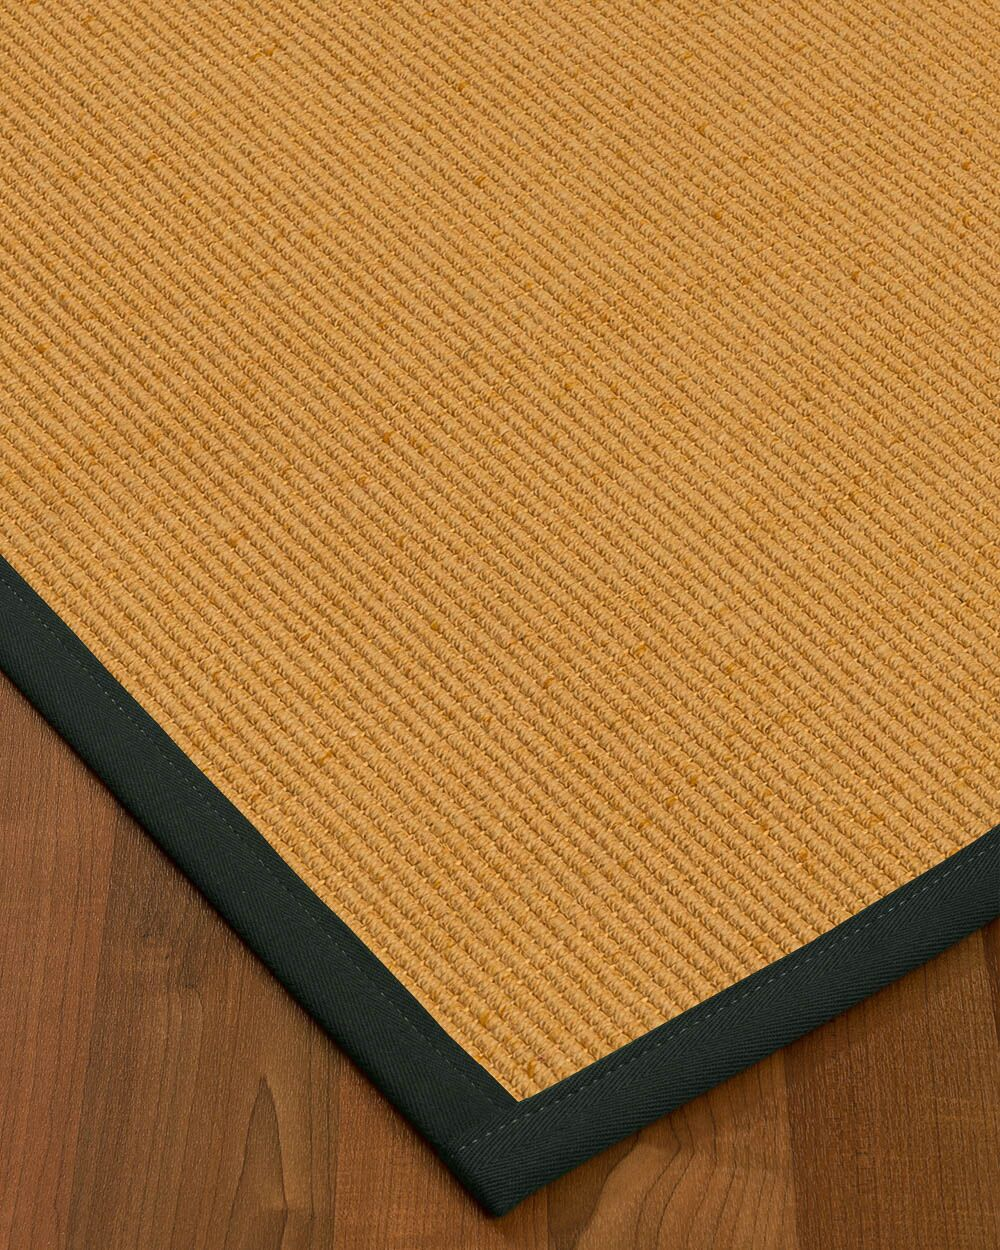 Vannatter Border Hand-Woven Beige/Black Area Rug Rug Size: Rectangle 9' x 12', Rug Pad Included: Yes